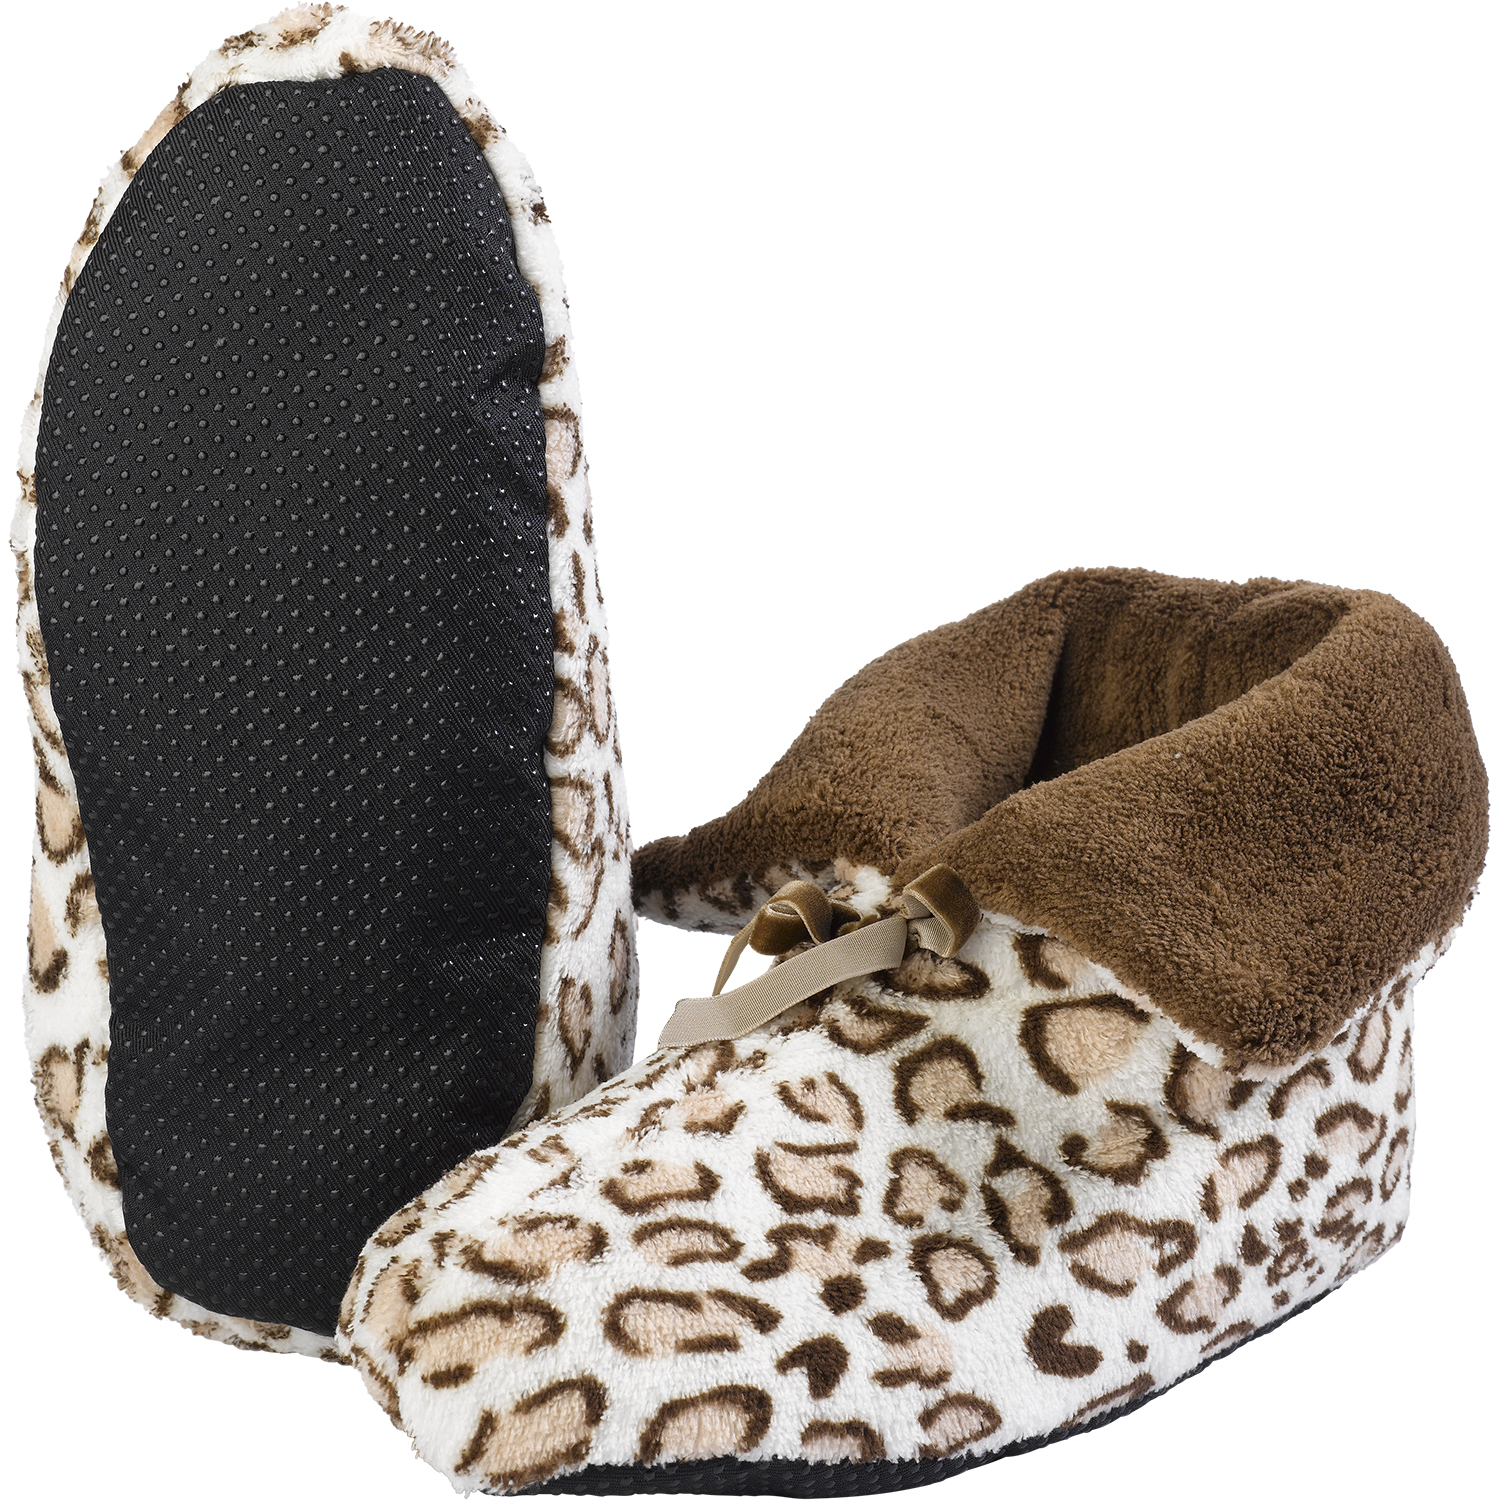 Treat your feet to this adorable pair of super-soft, leopard print Snoozies! A comfy cross between socks and slippers that are perfect for those colder months, Snoozies feature non-skid soles for safety on slick floors and a warm, cozy pom-pom Sherpa interior lining.